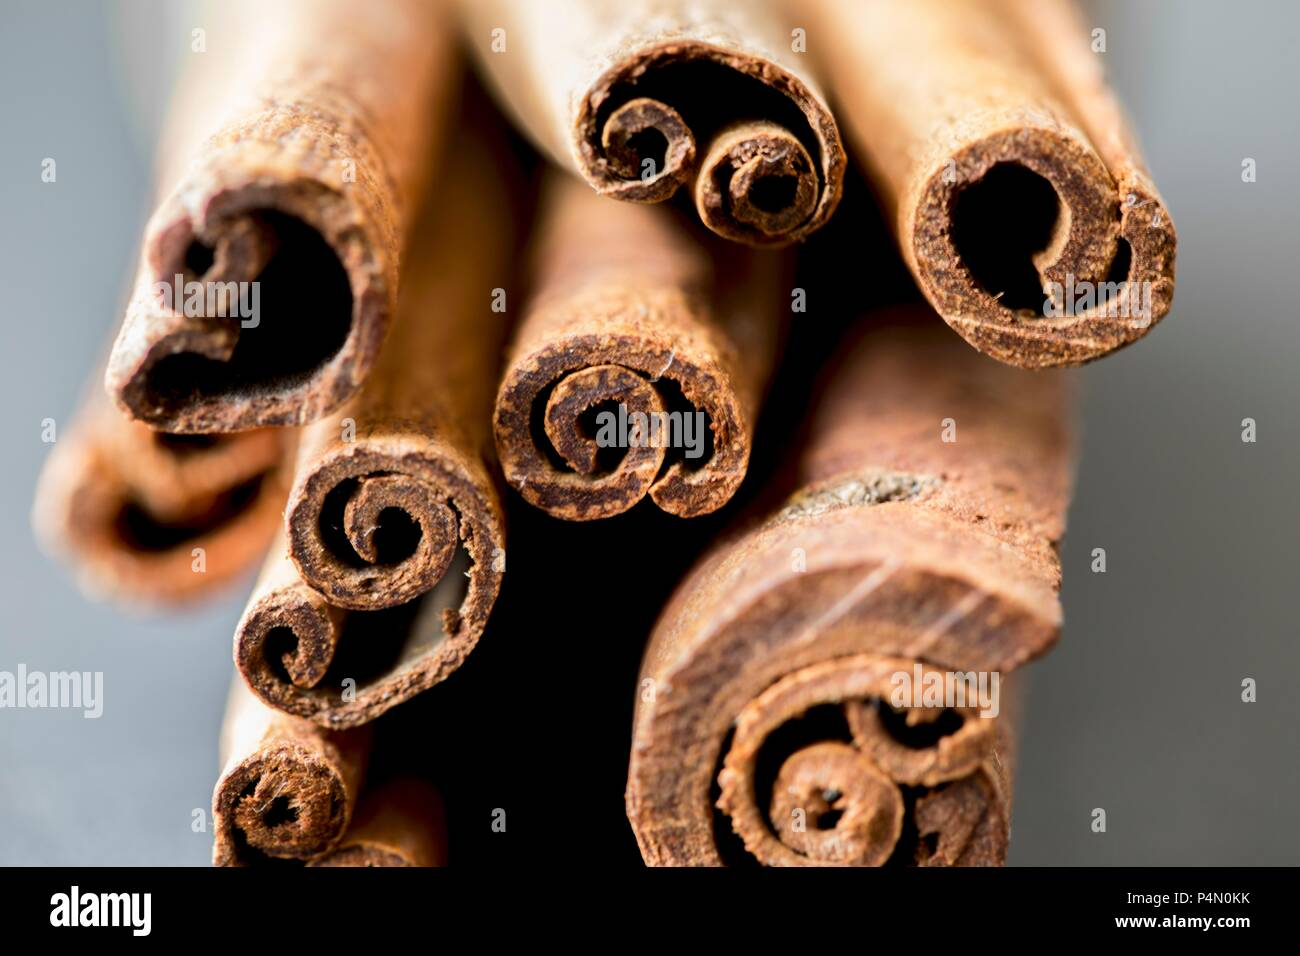 Several cinnamon sticks (close-up) - Stock Image